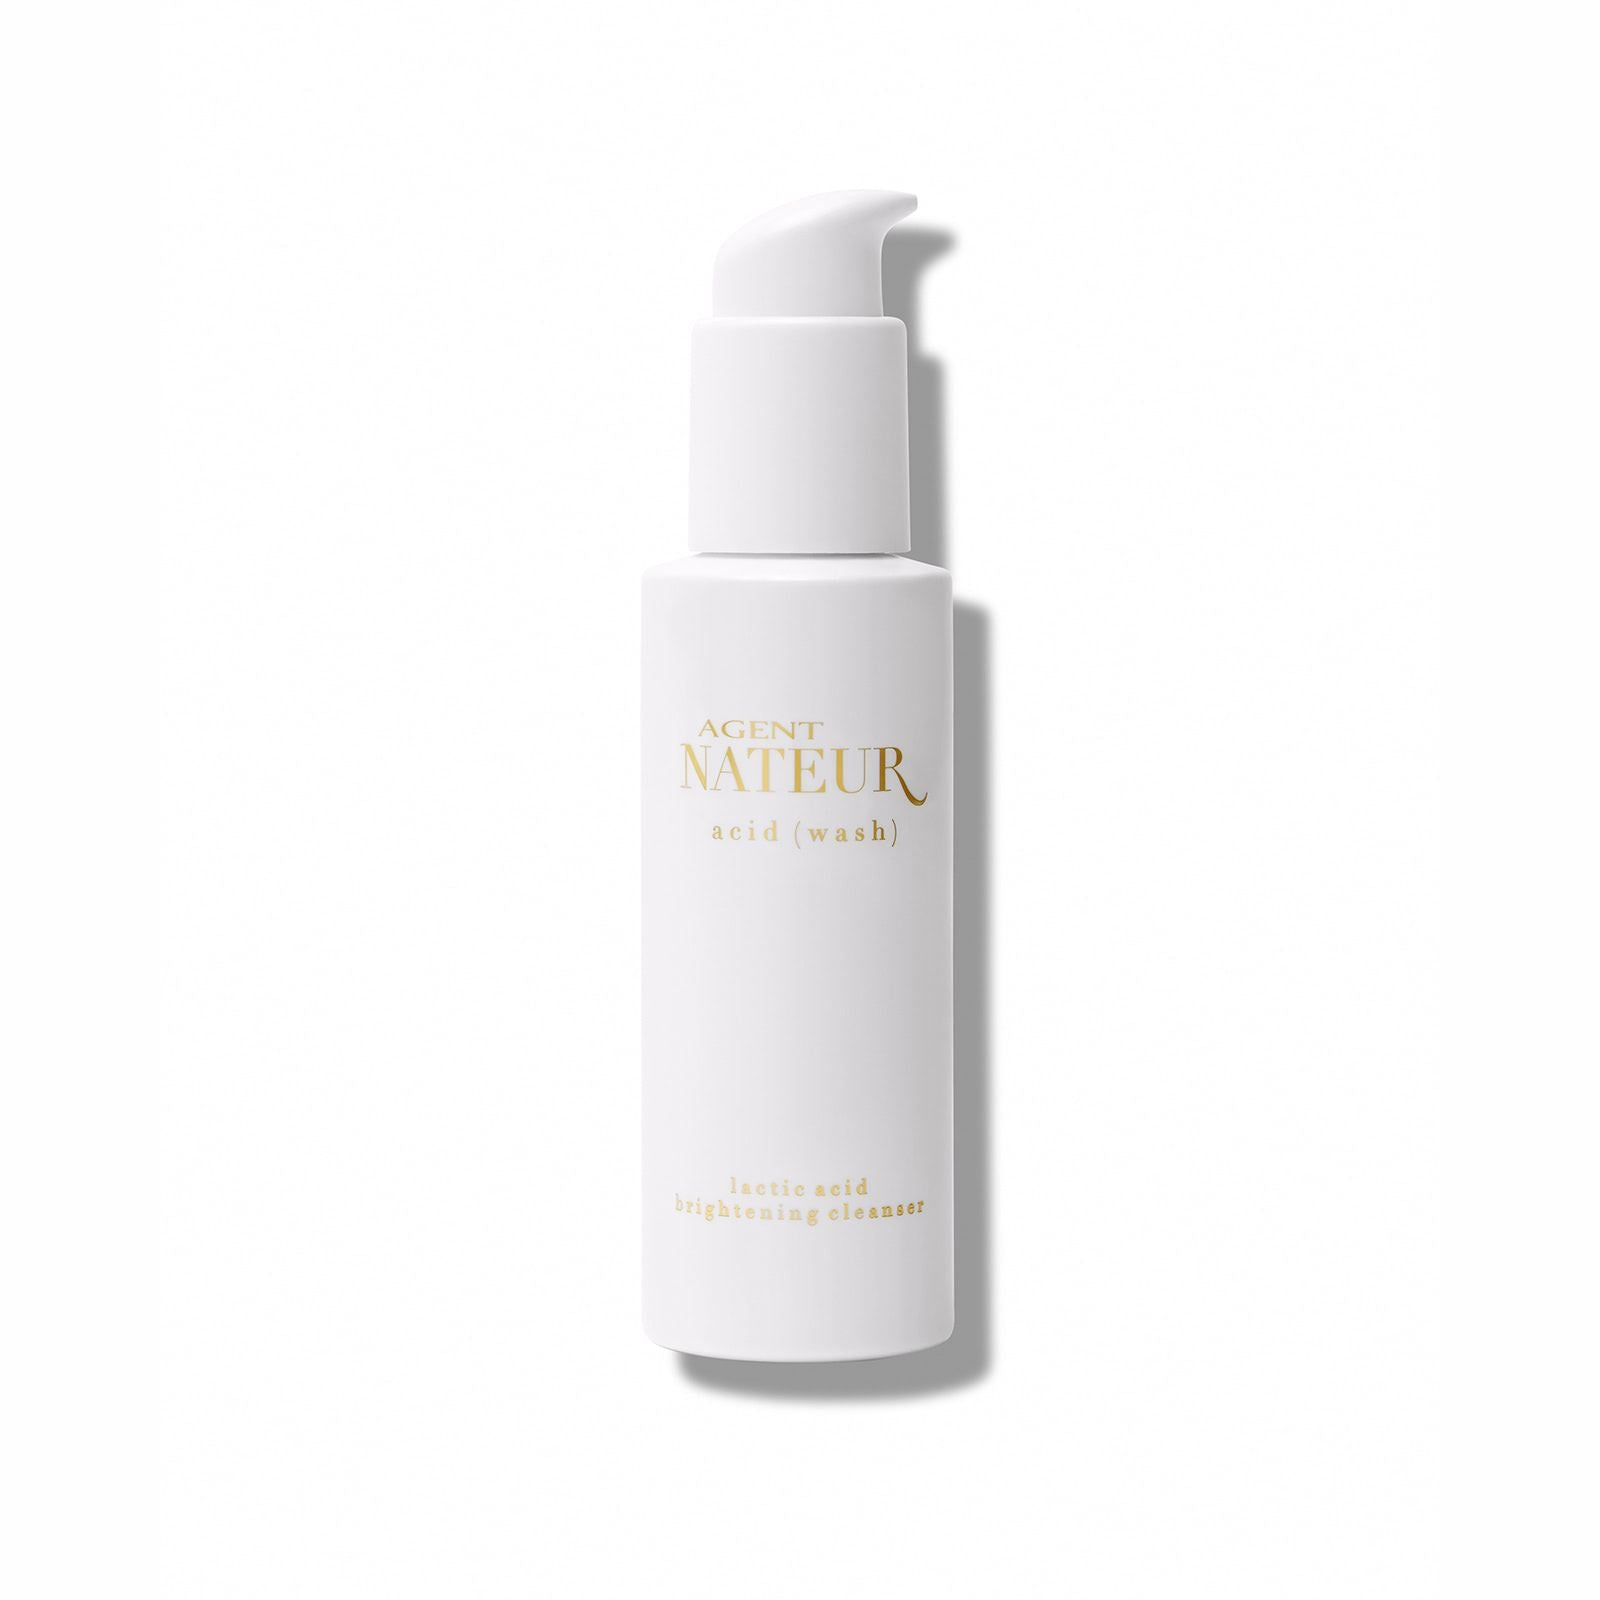 Acid(Wash) Lactic Acid Brightening Cleanser